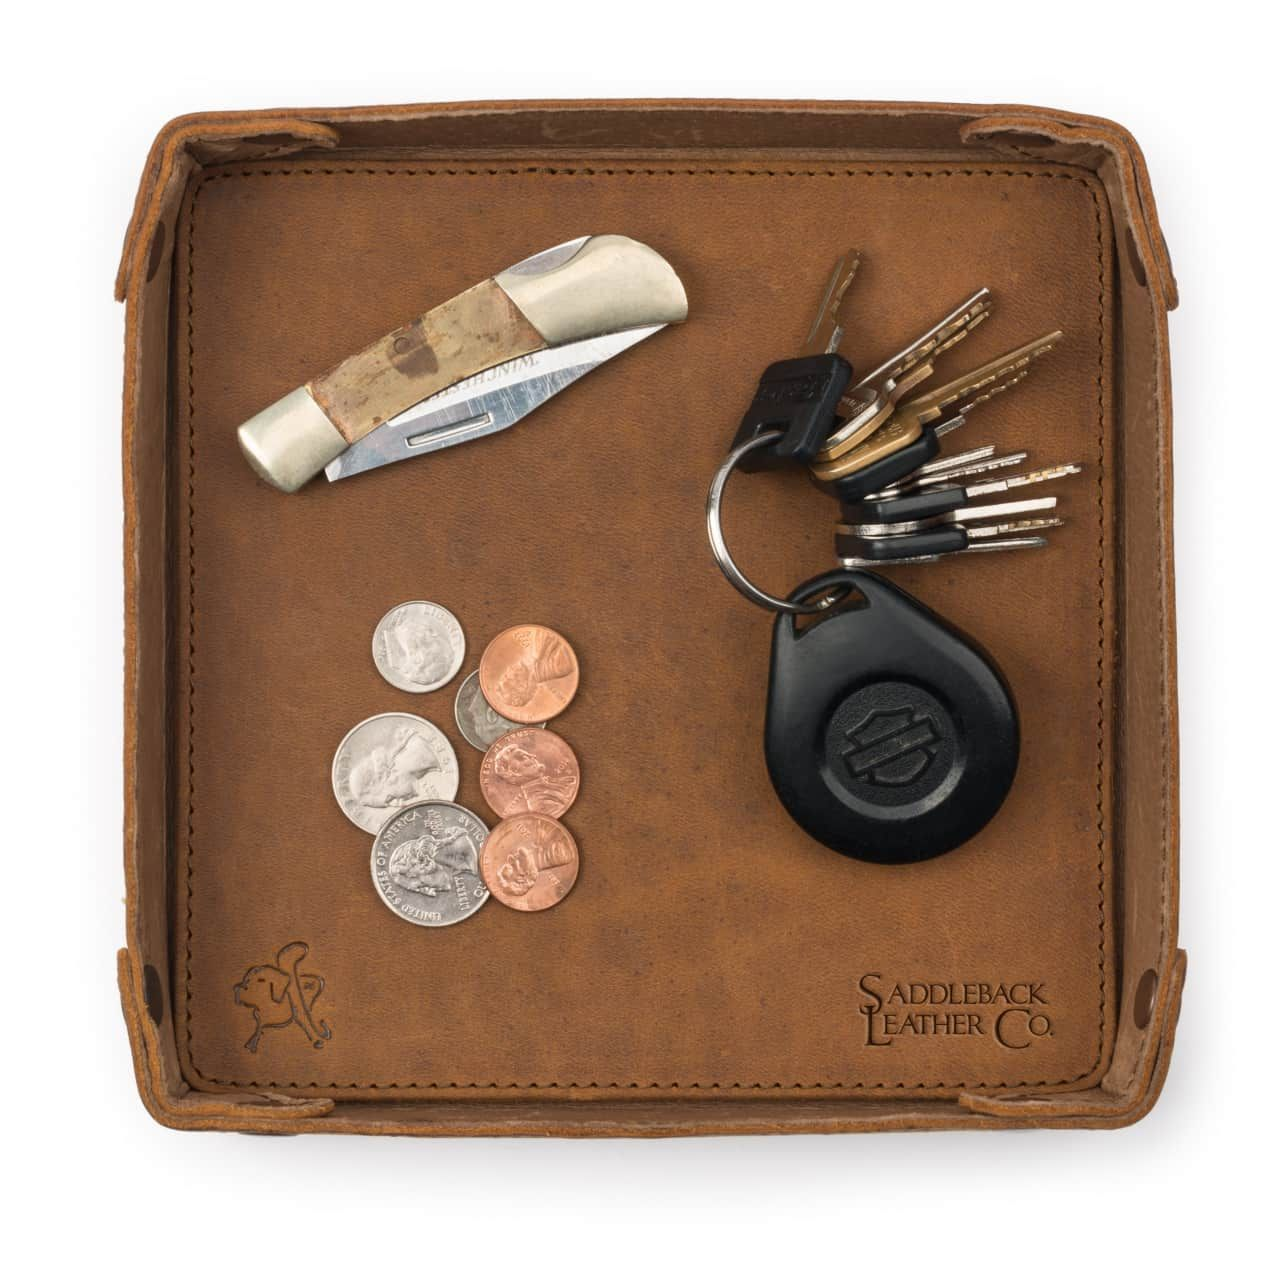 Keys, money and something located on the leather valet tray in tobacco leather